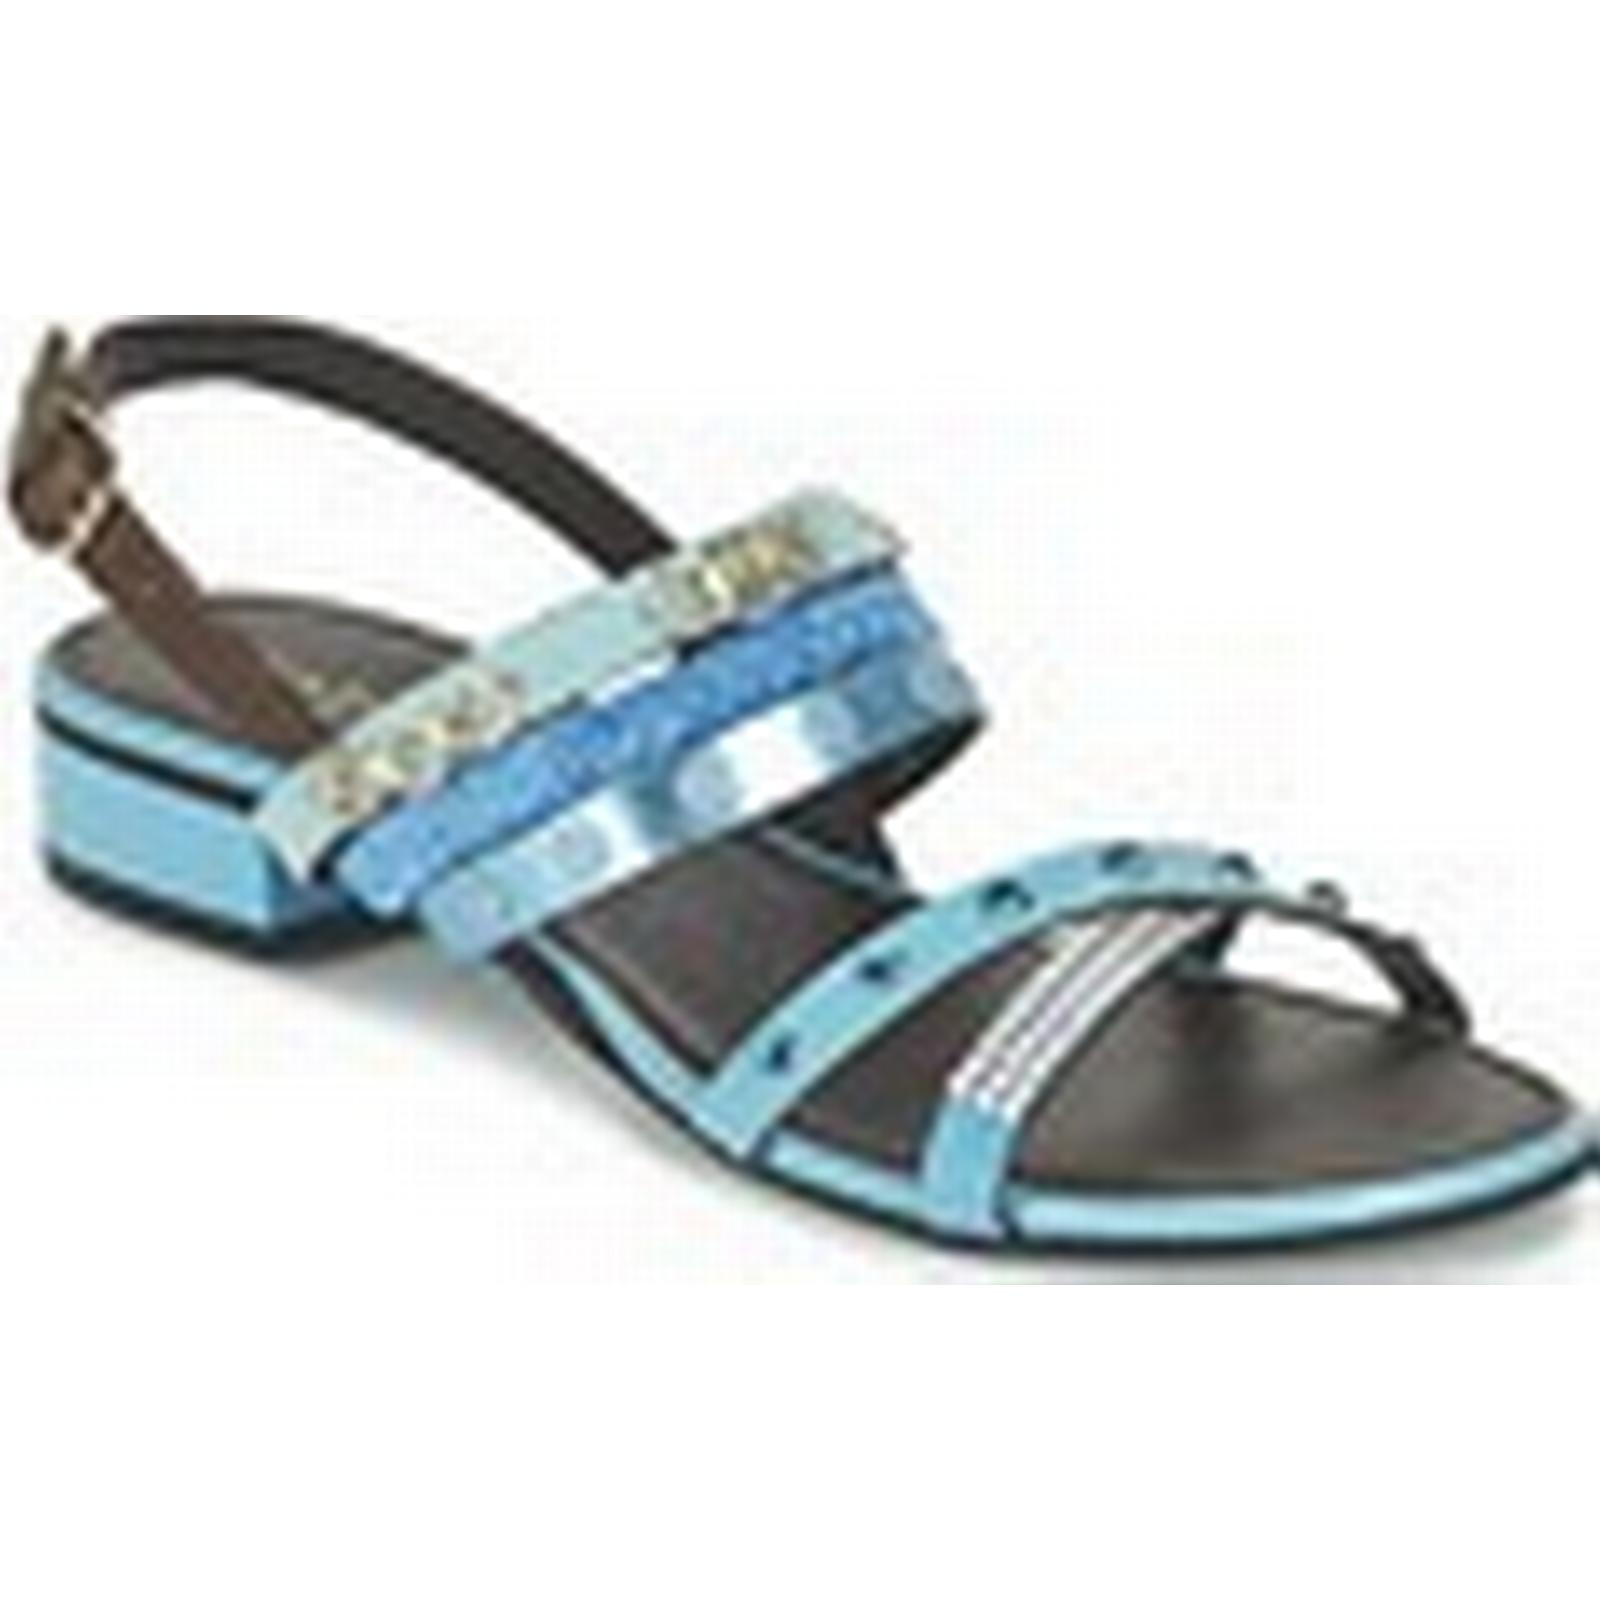 Café Noir  FERTAMO  women's women's  Sandals in Blue c167b7